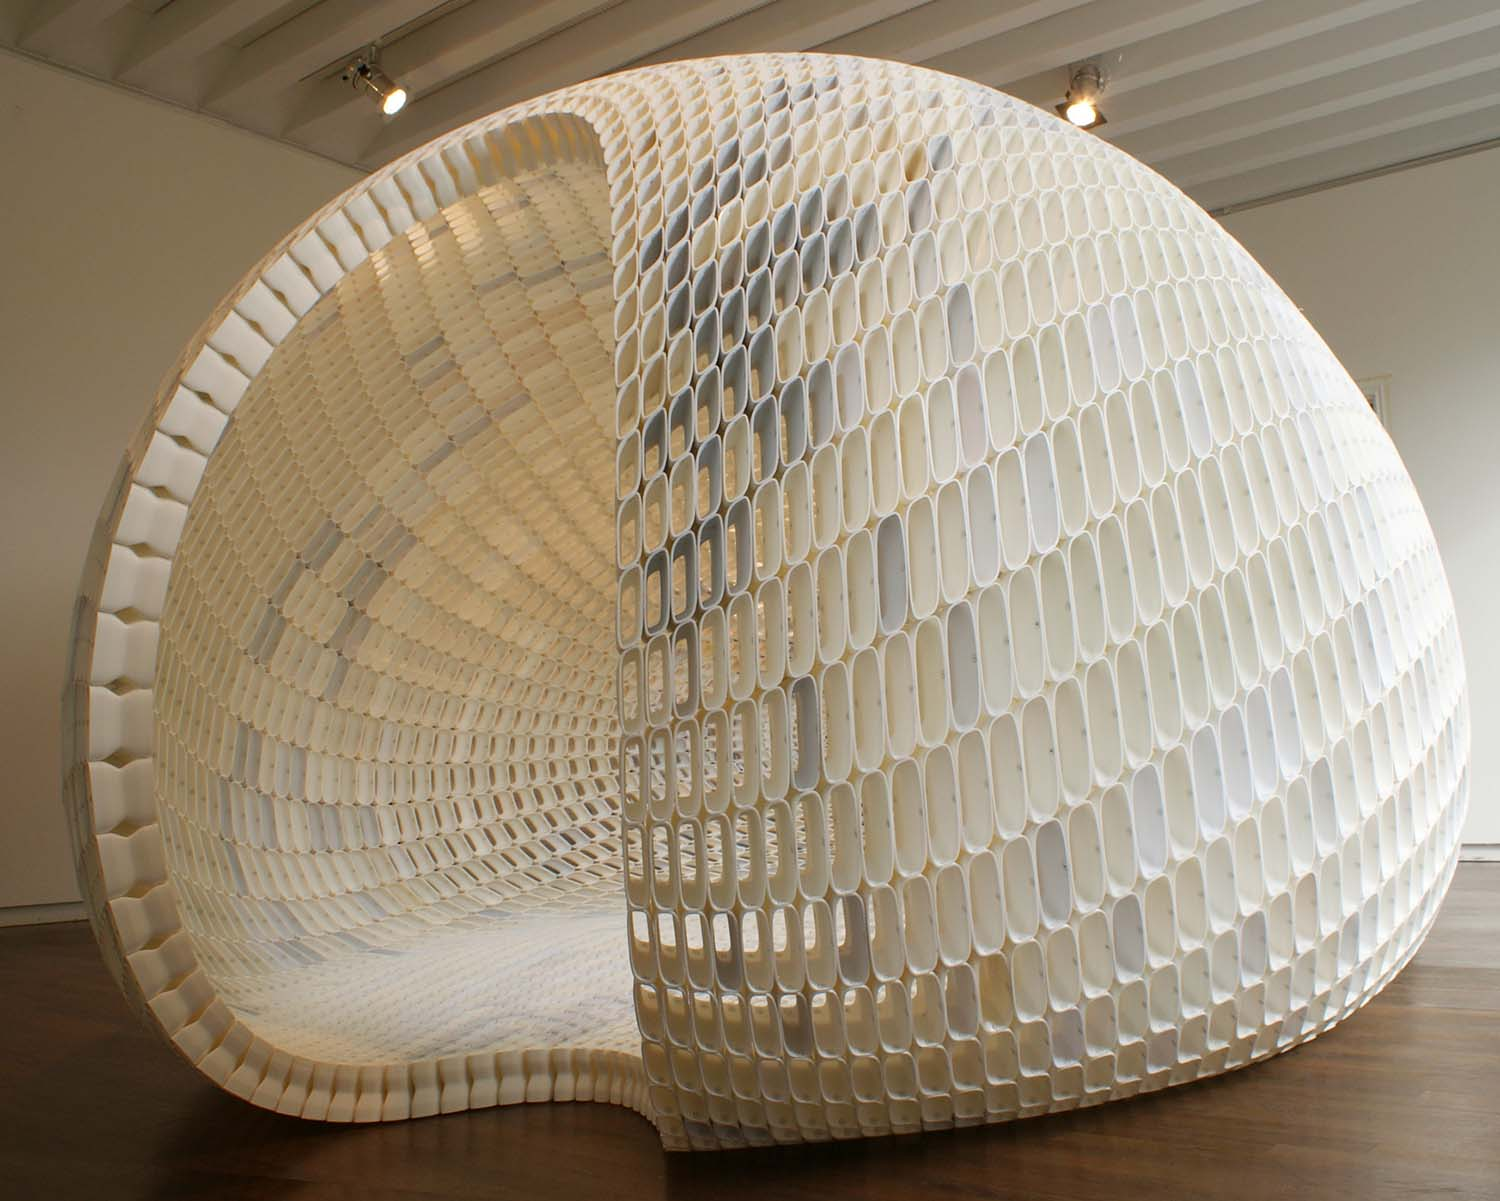 Project Egg Small Pavilion by Michiel Van Der Kley is Winner in 3D Printed Forms and Products Design Category, 2018 - 2019.